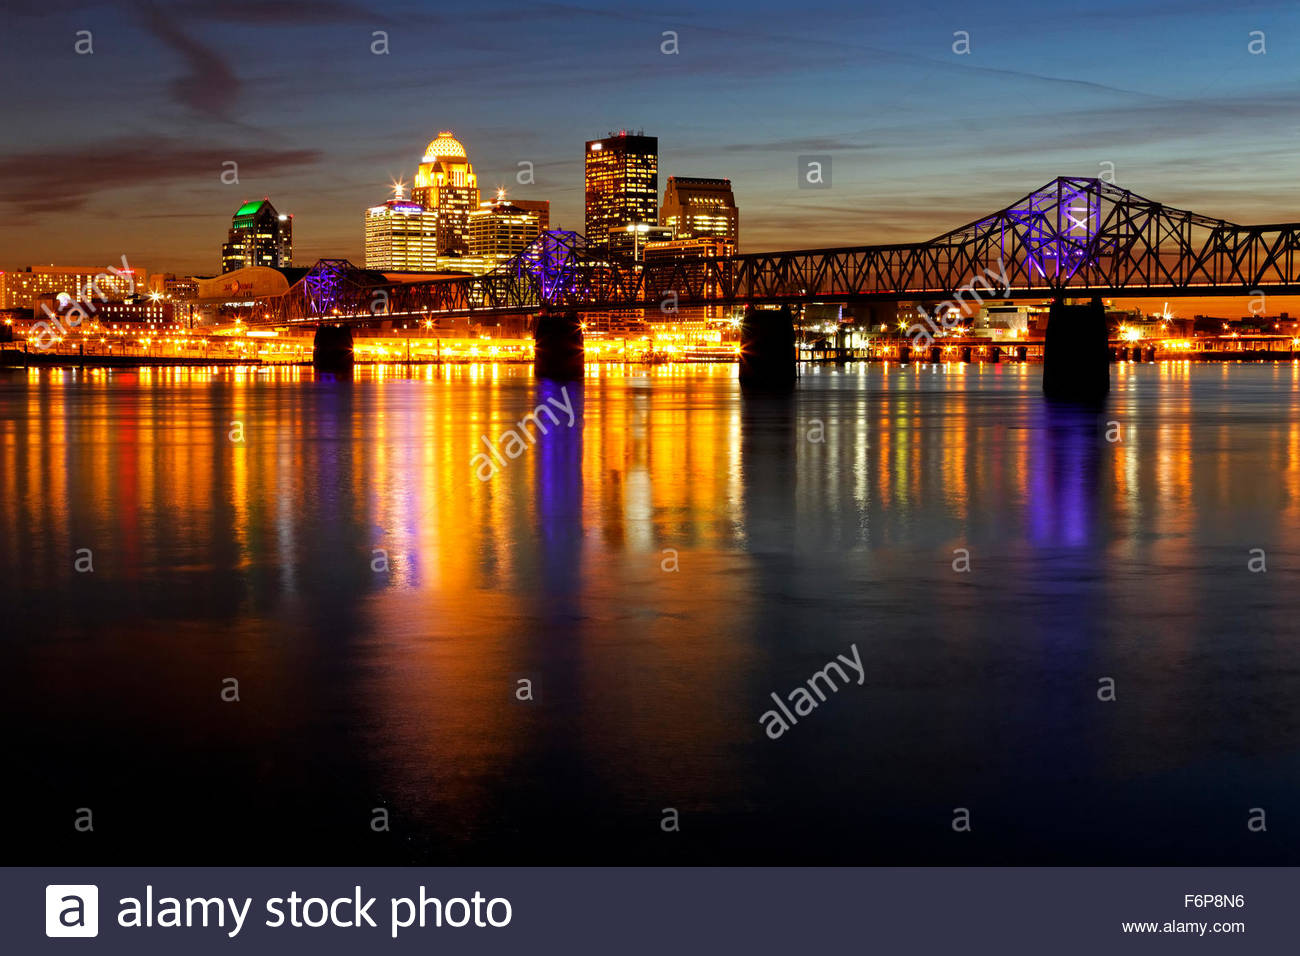 George Rogers Clark Memorial Bridge and Louisville, Kentucky skyline at sunset - Stock Image